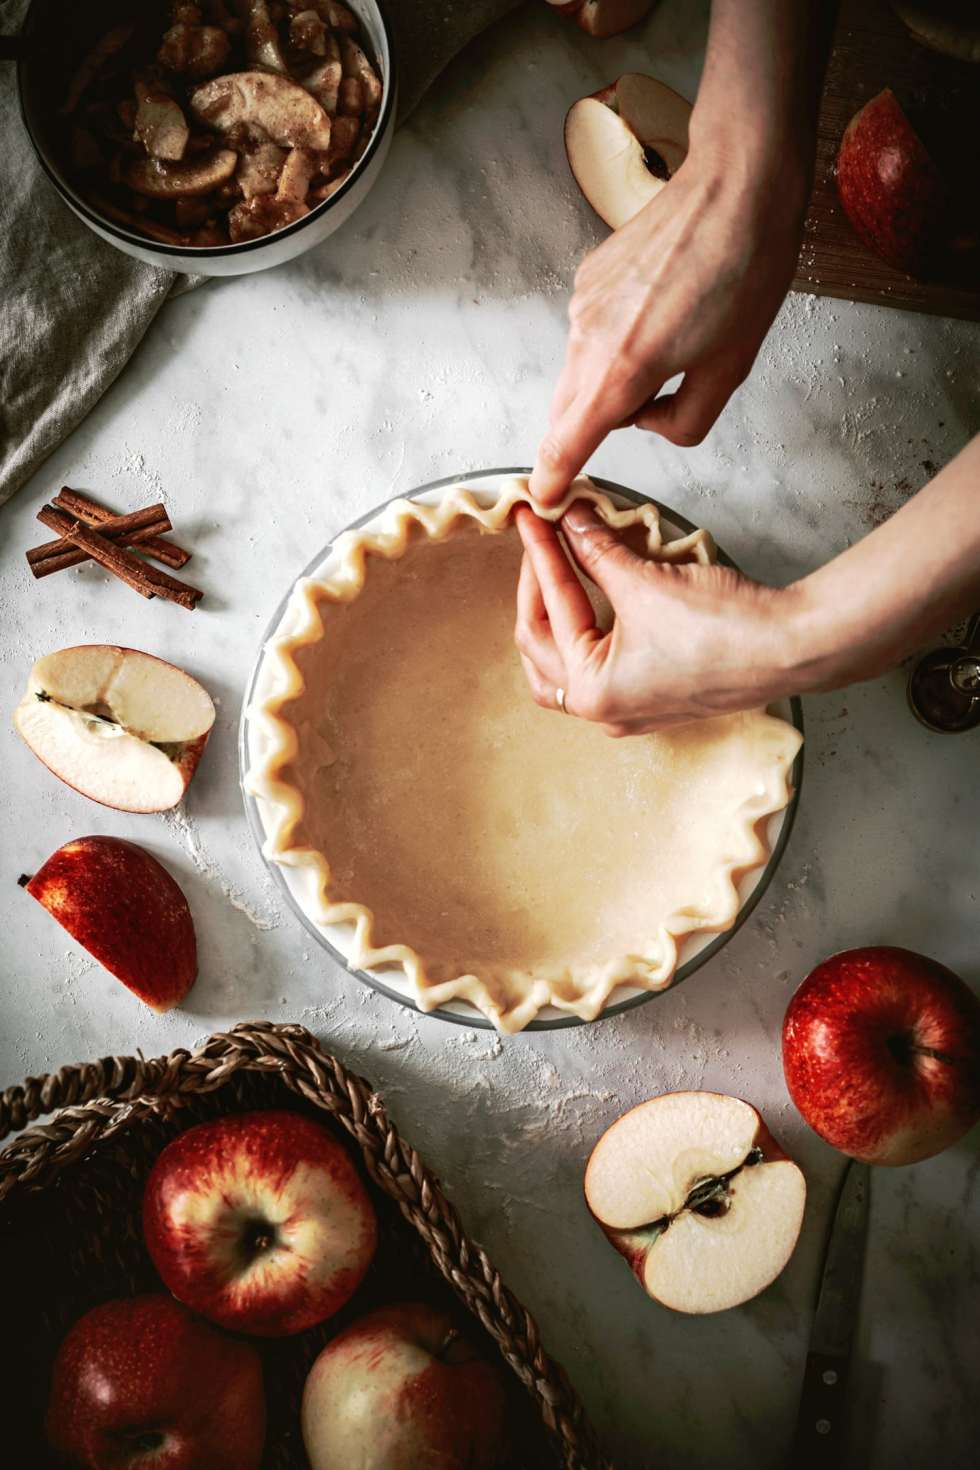 Shaping the apple pie